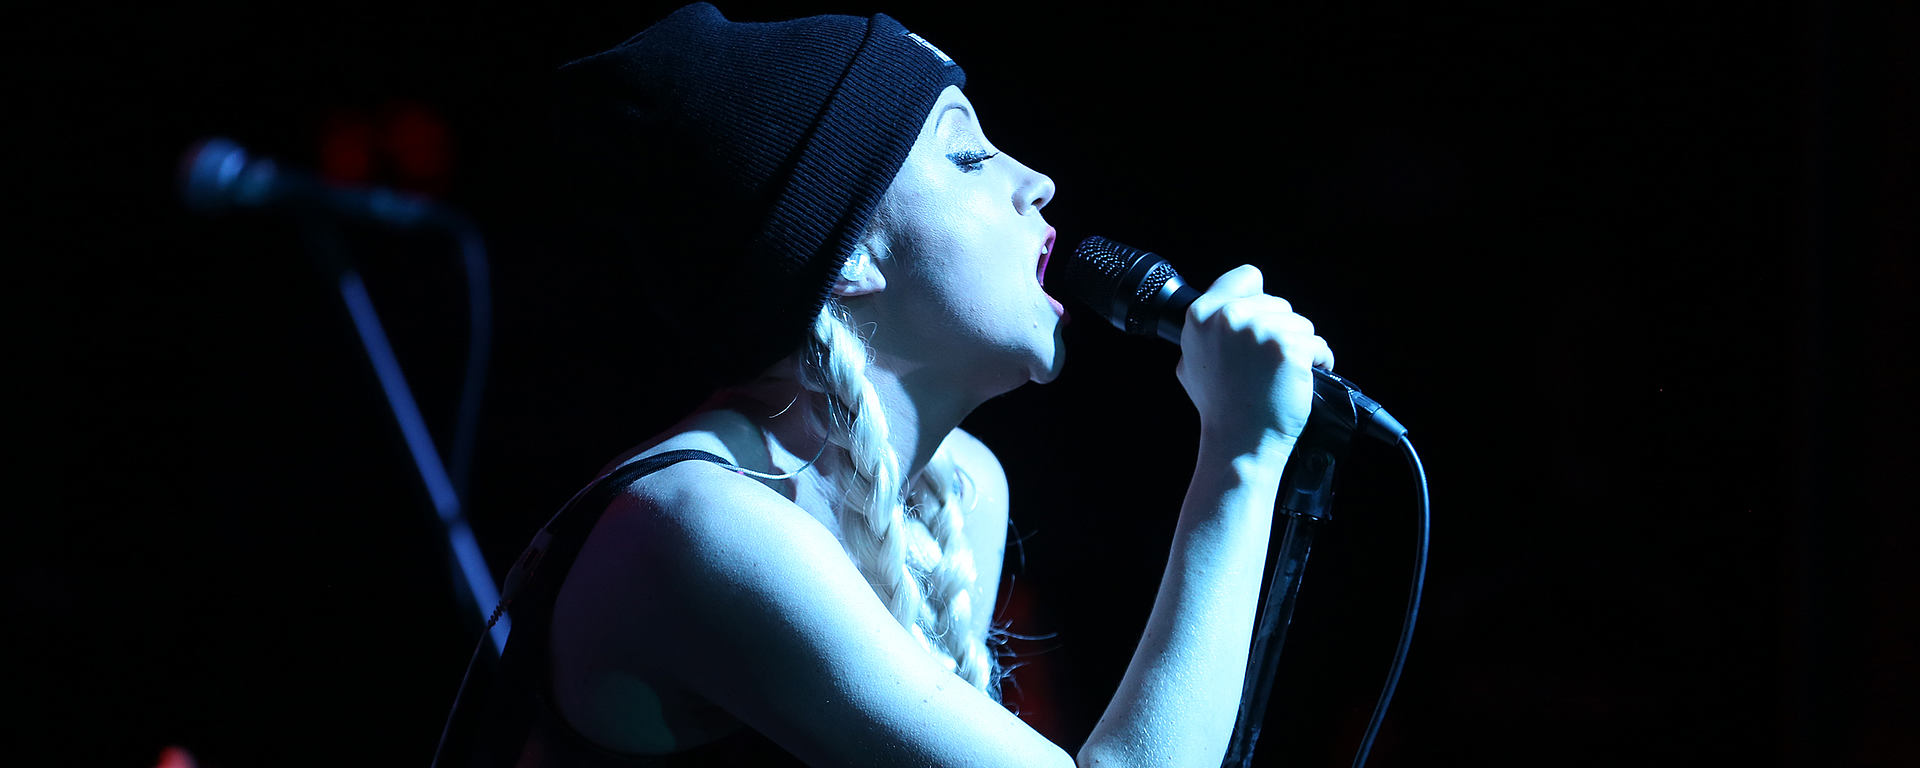 Christina Chriss on tour with her reference live vocal mic MTP 550 DM